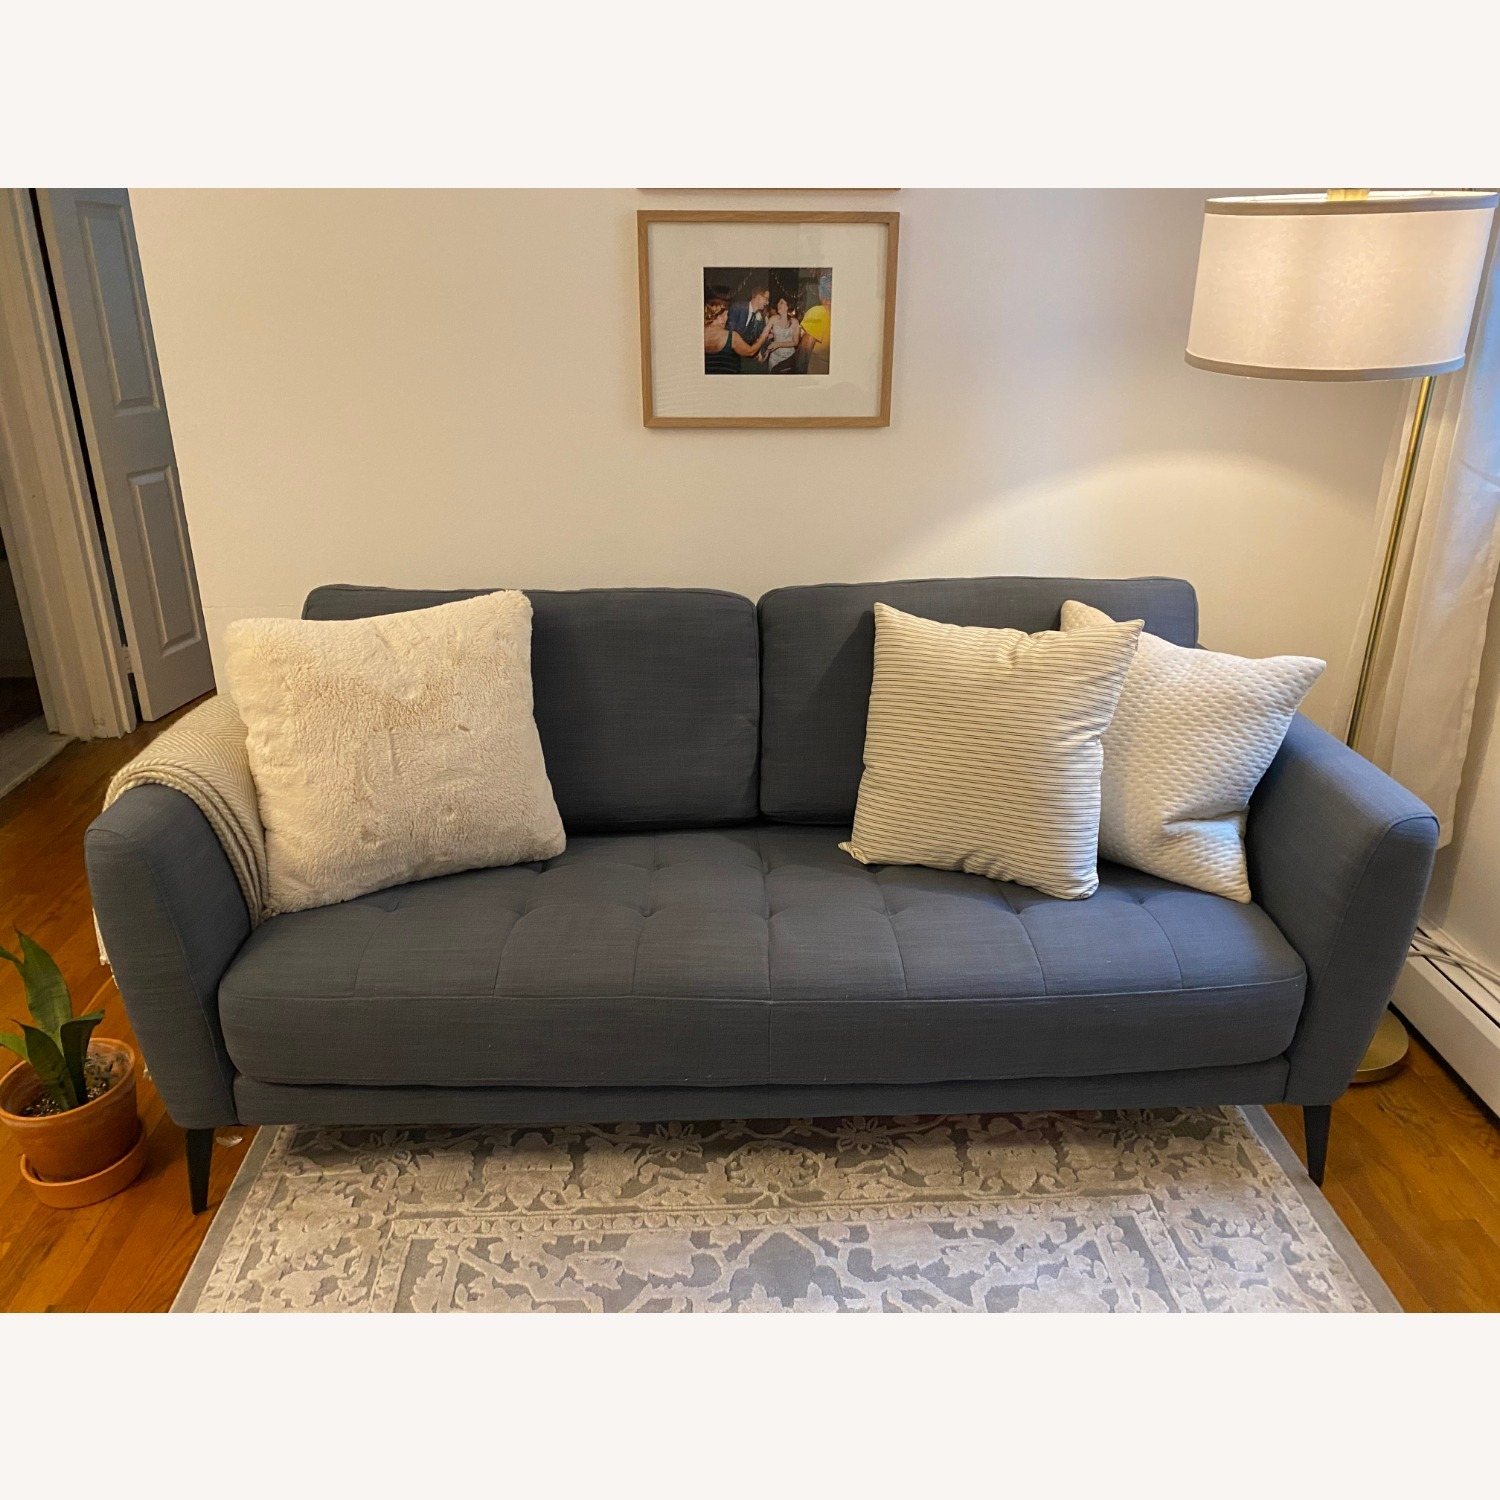 Macy's Tufted Modern Couch Sofa - image-2